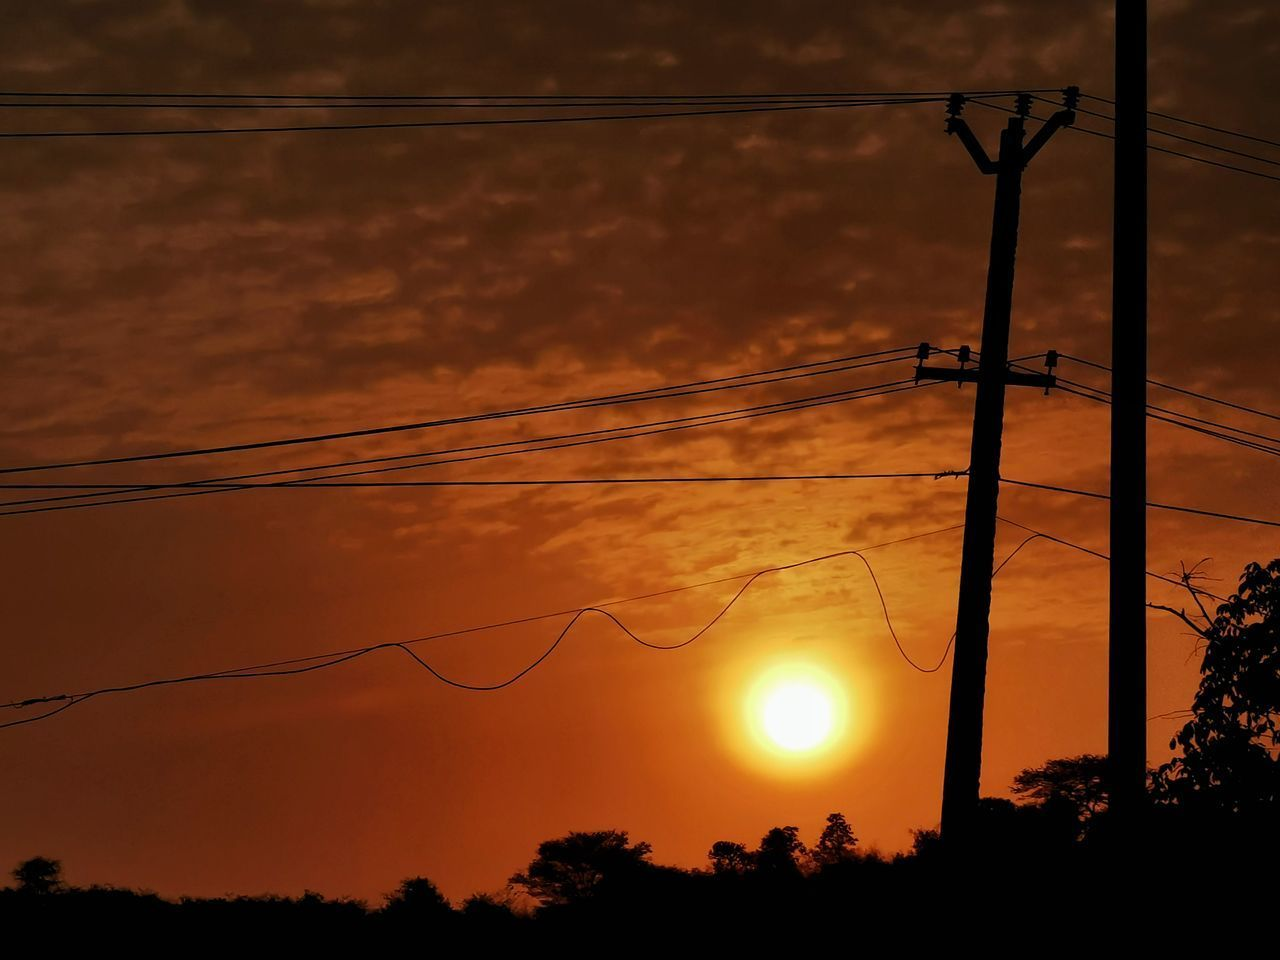 LOW ANGLE VIEW OF SILHOUETTE ELECTRICITY PYLON DURING SUNSET